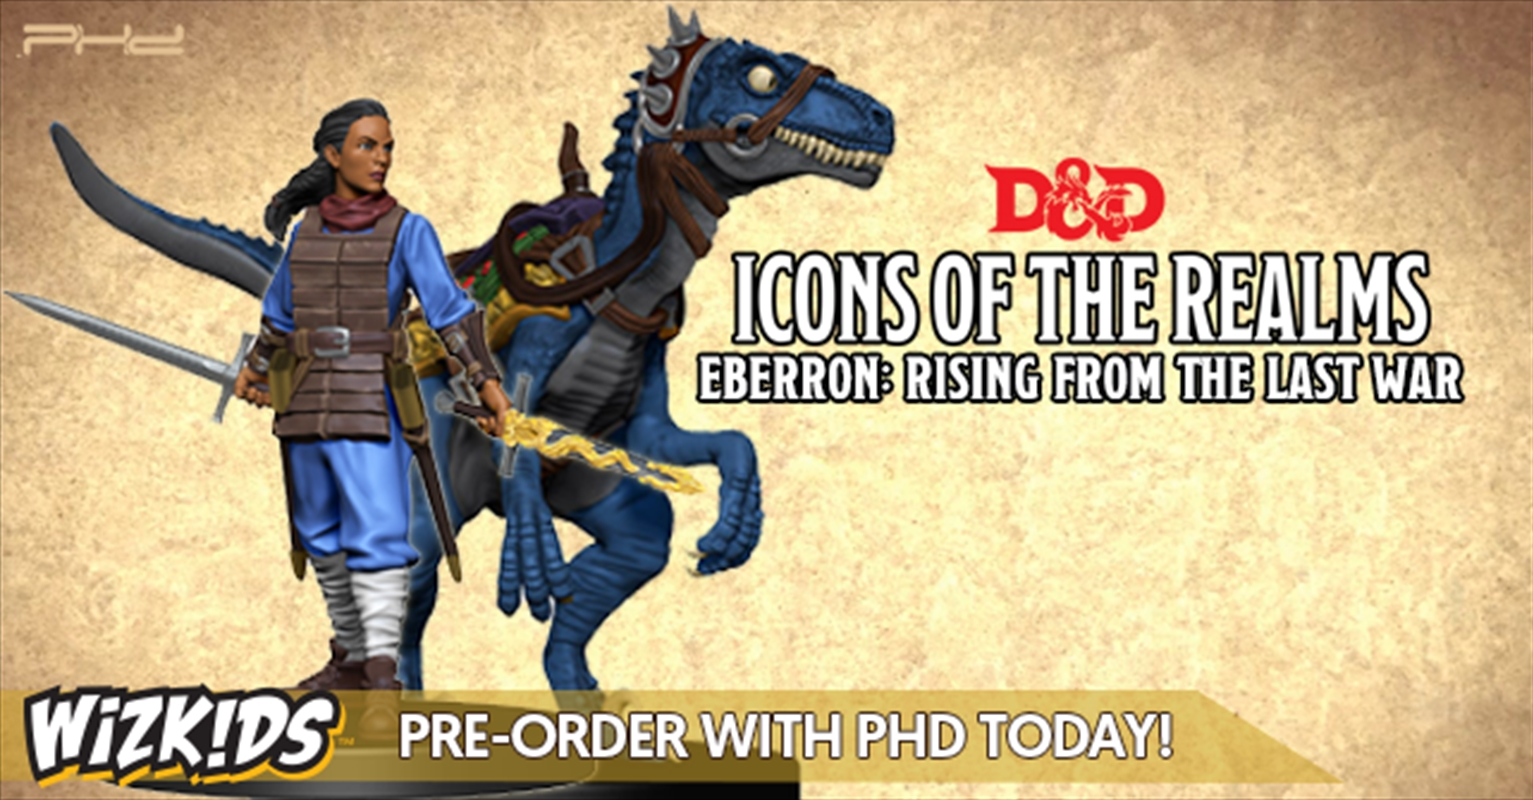 Dungeons & Dragons - Icons of the Realms Eberron: Rising From the Last War Skycoach Premium Set | Merchandise